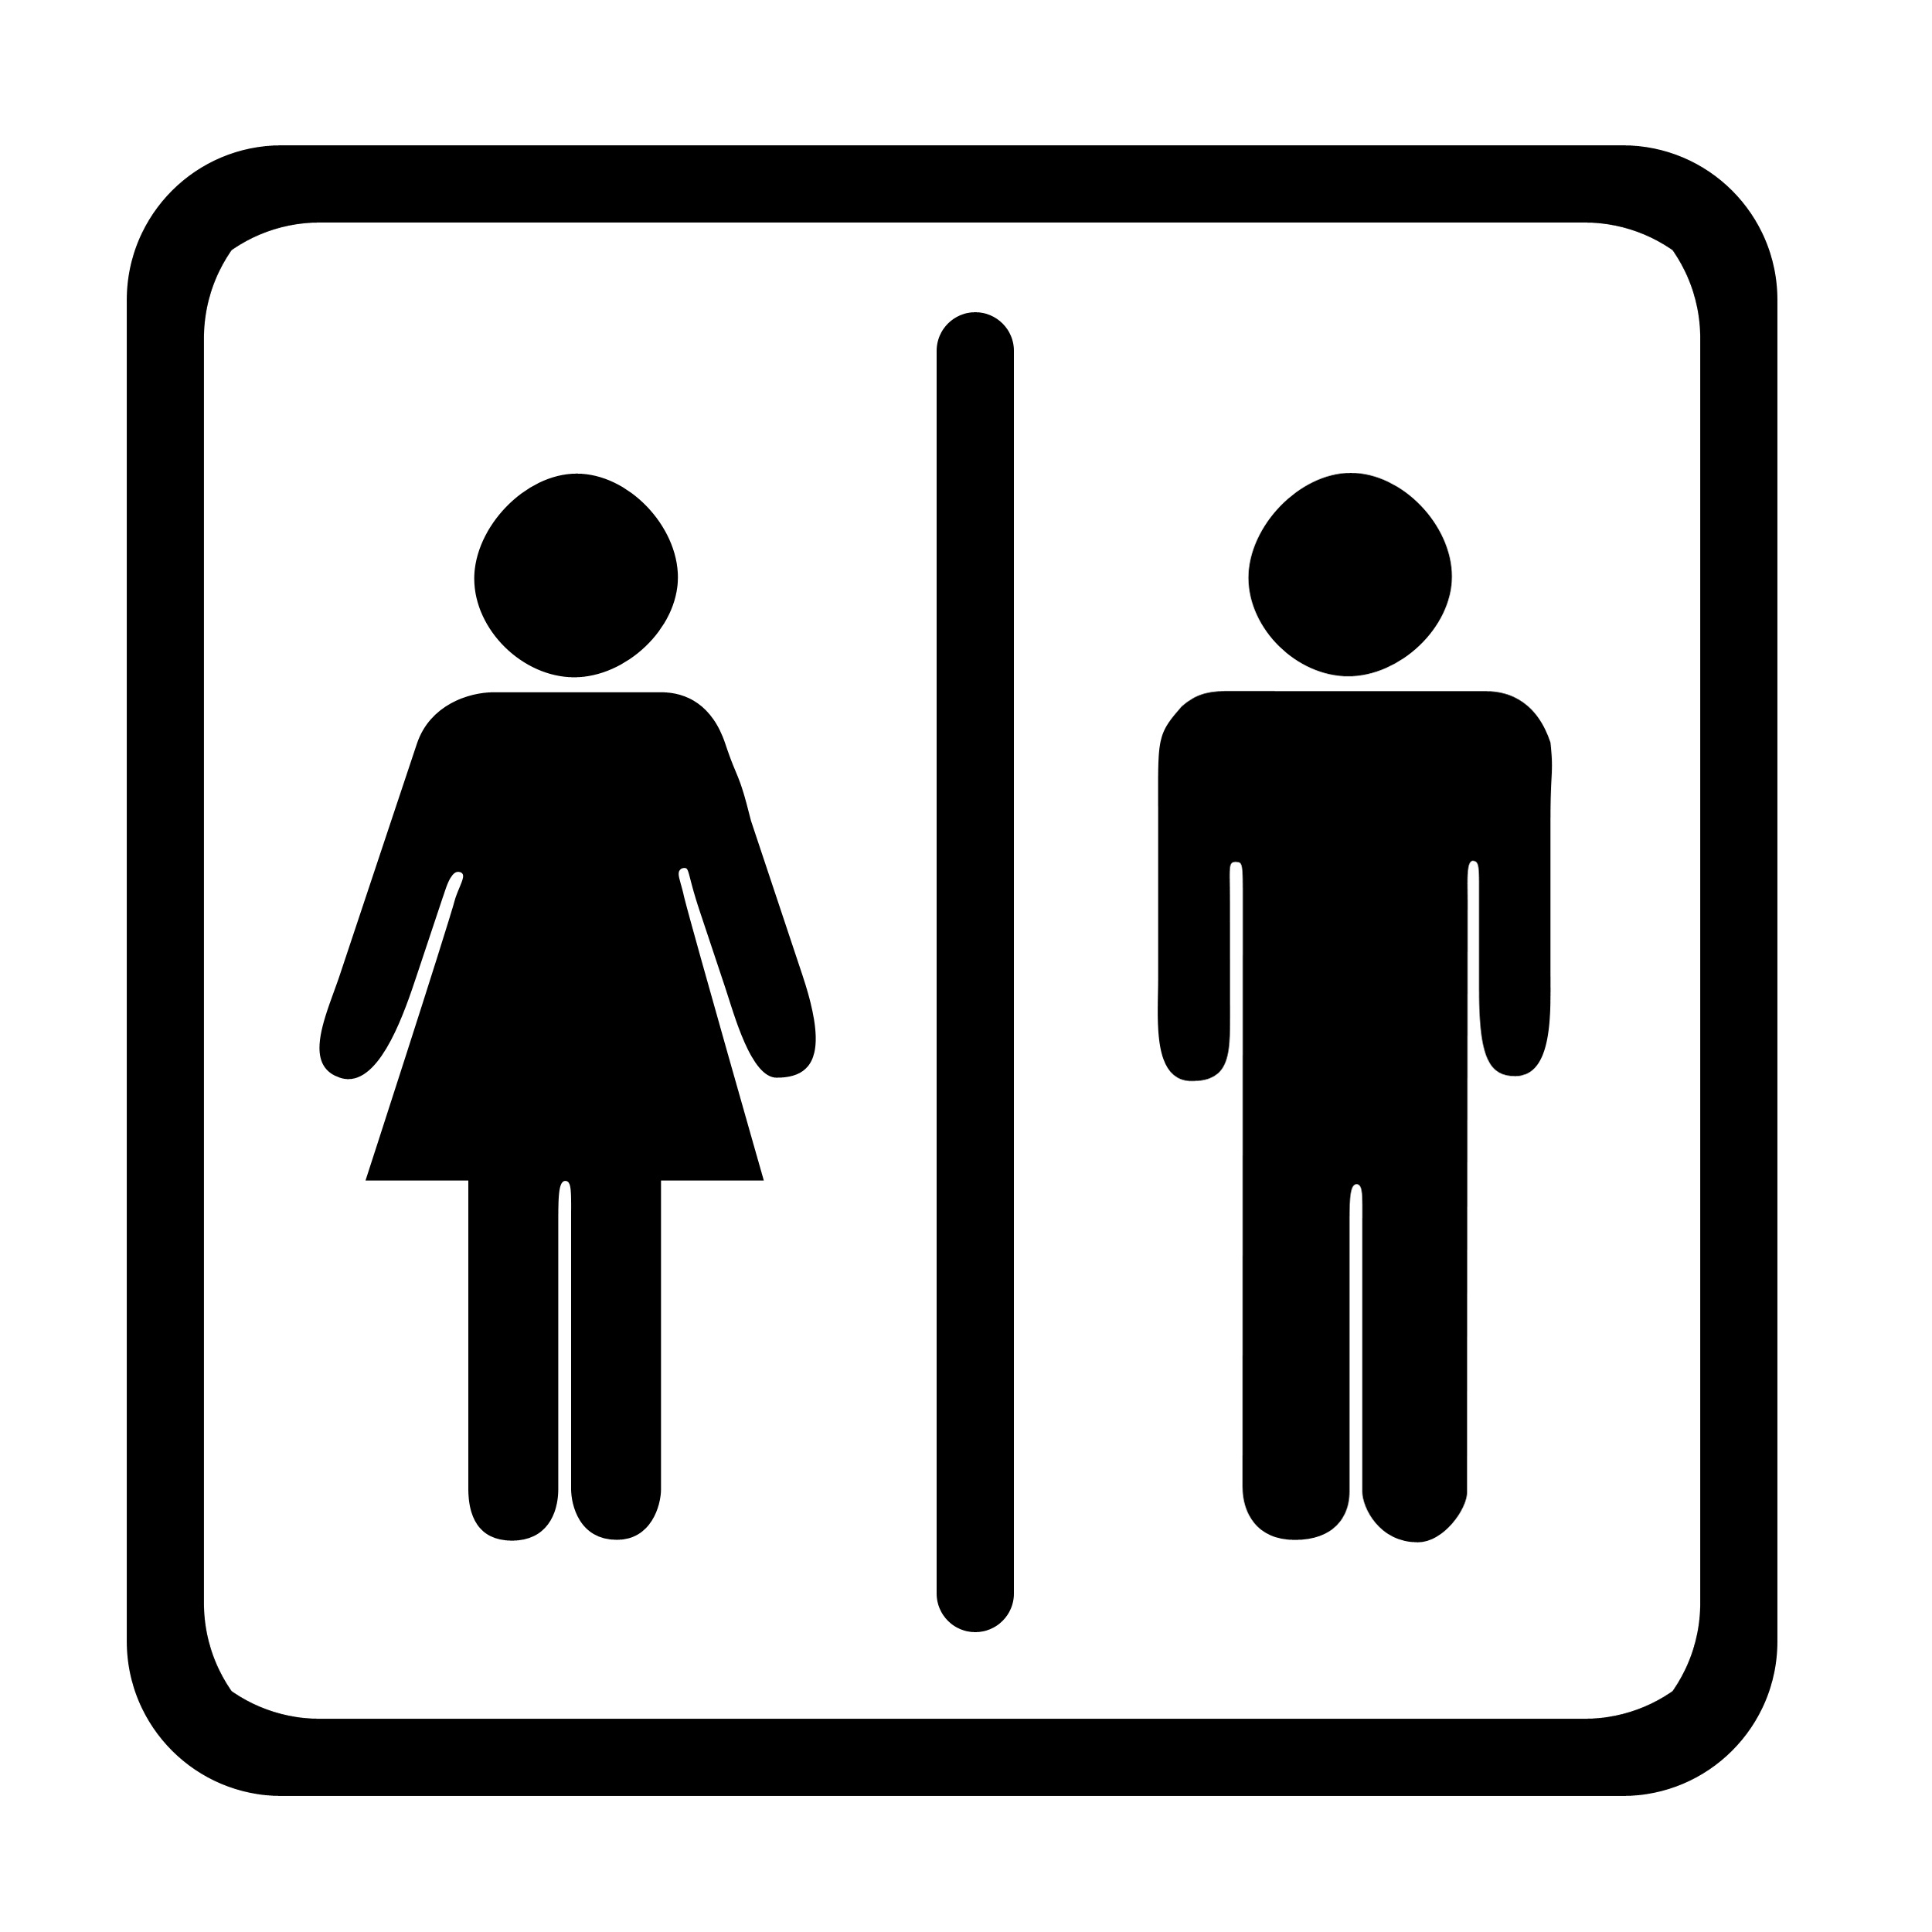 12 Toilet Sign Free Cliparts That You Can Download To You Computer And. Men Women Bathroom Sign Clipart   Clipart Kid